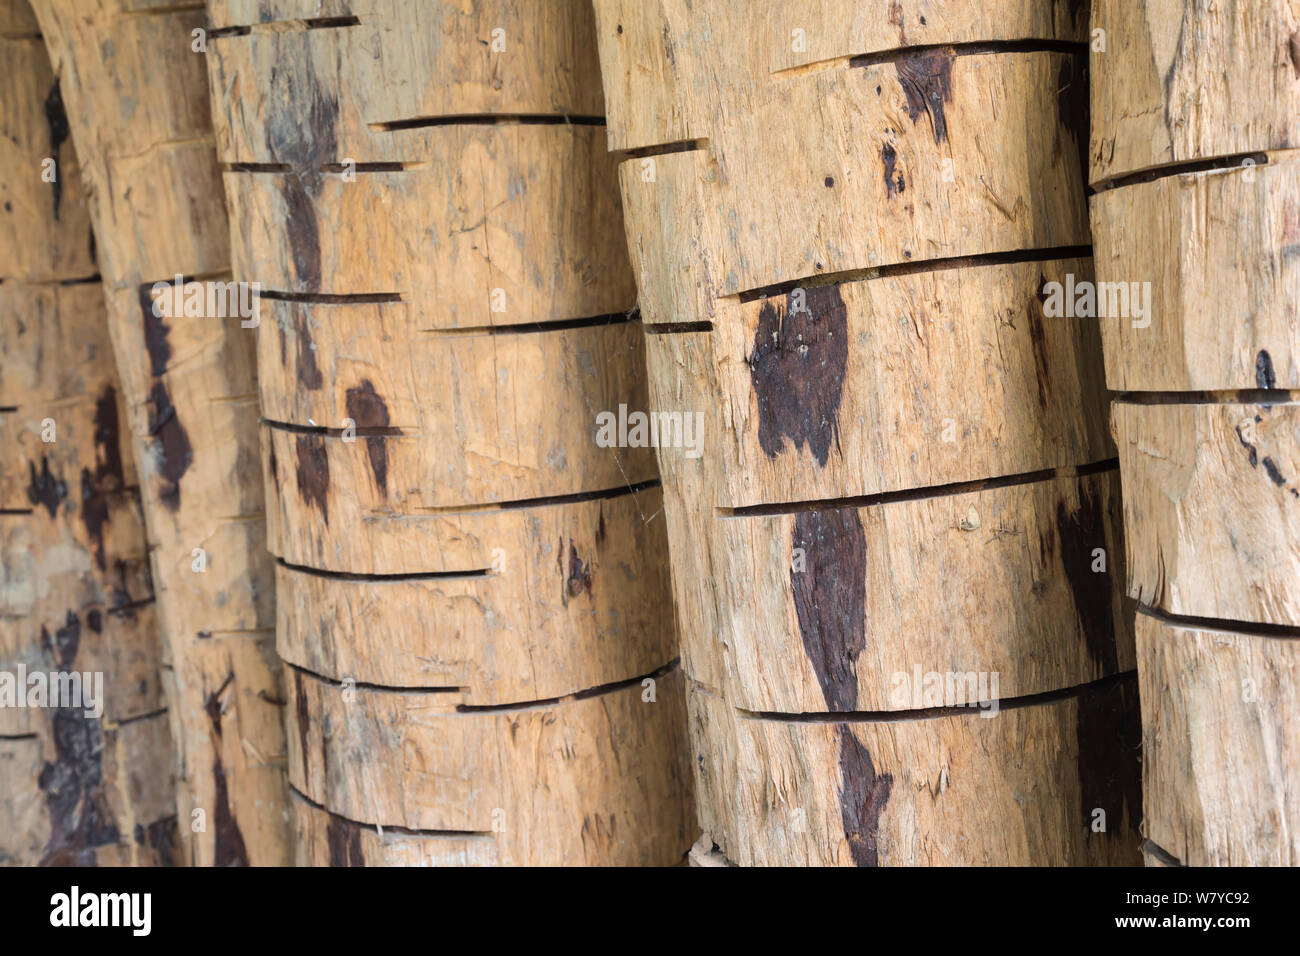 Confiscated Siam rosewood tree (Dalbergia cochinchinensi) wood, showing poachers' cuts to aid debarking, Thap Lan National Park, Dong Phayayen-Khao Yai Forest Complex, eastern Thailand, August. Stock Photo